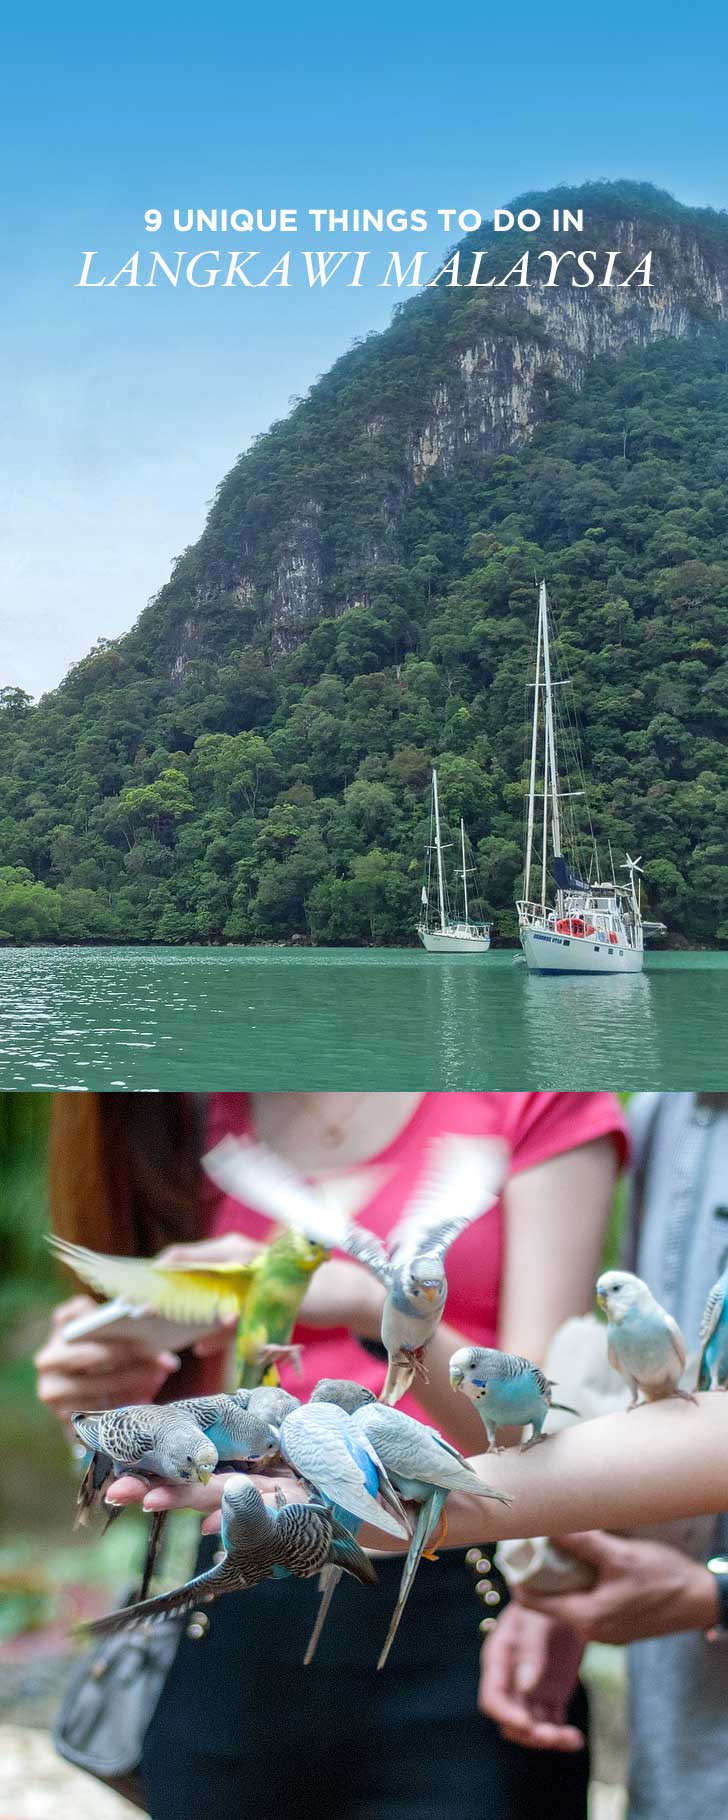 9 Unique Things to Do in Langkawi Malaysia - finally visited after hearing of the beaches and natural beauty of the island for years // localadventurer.com